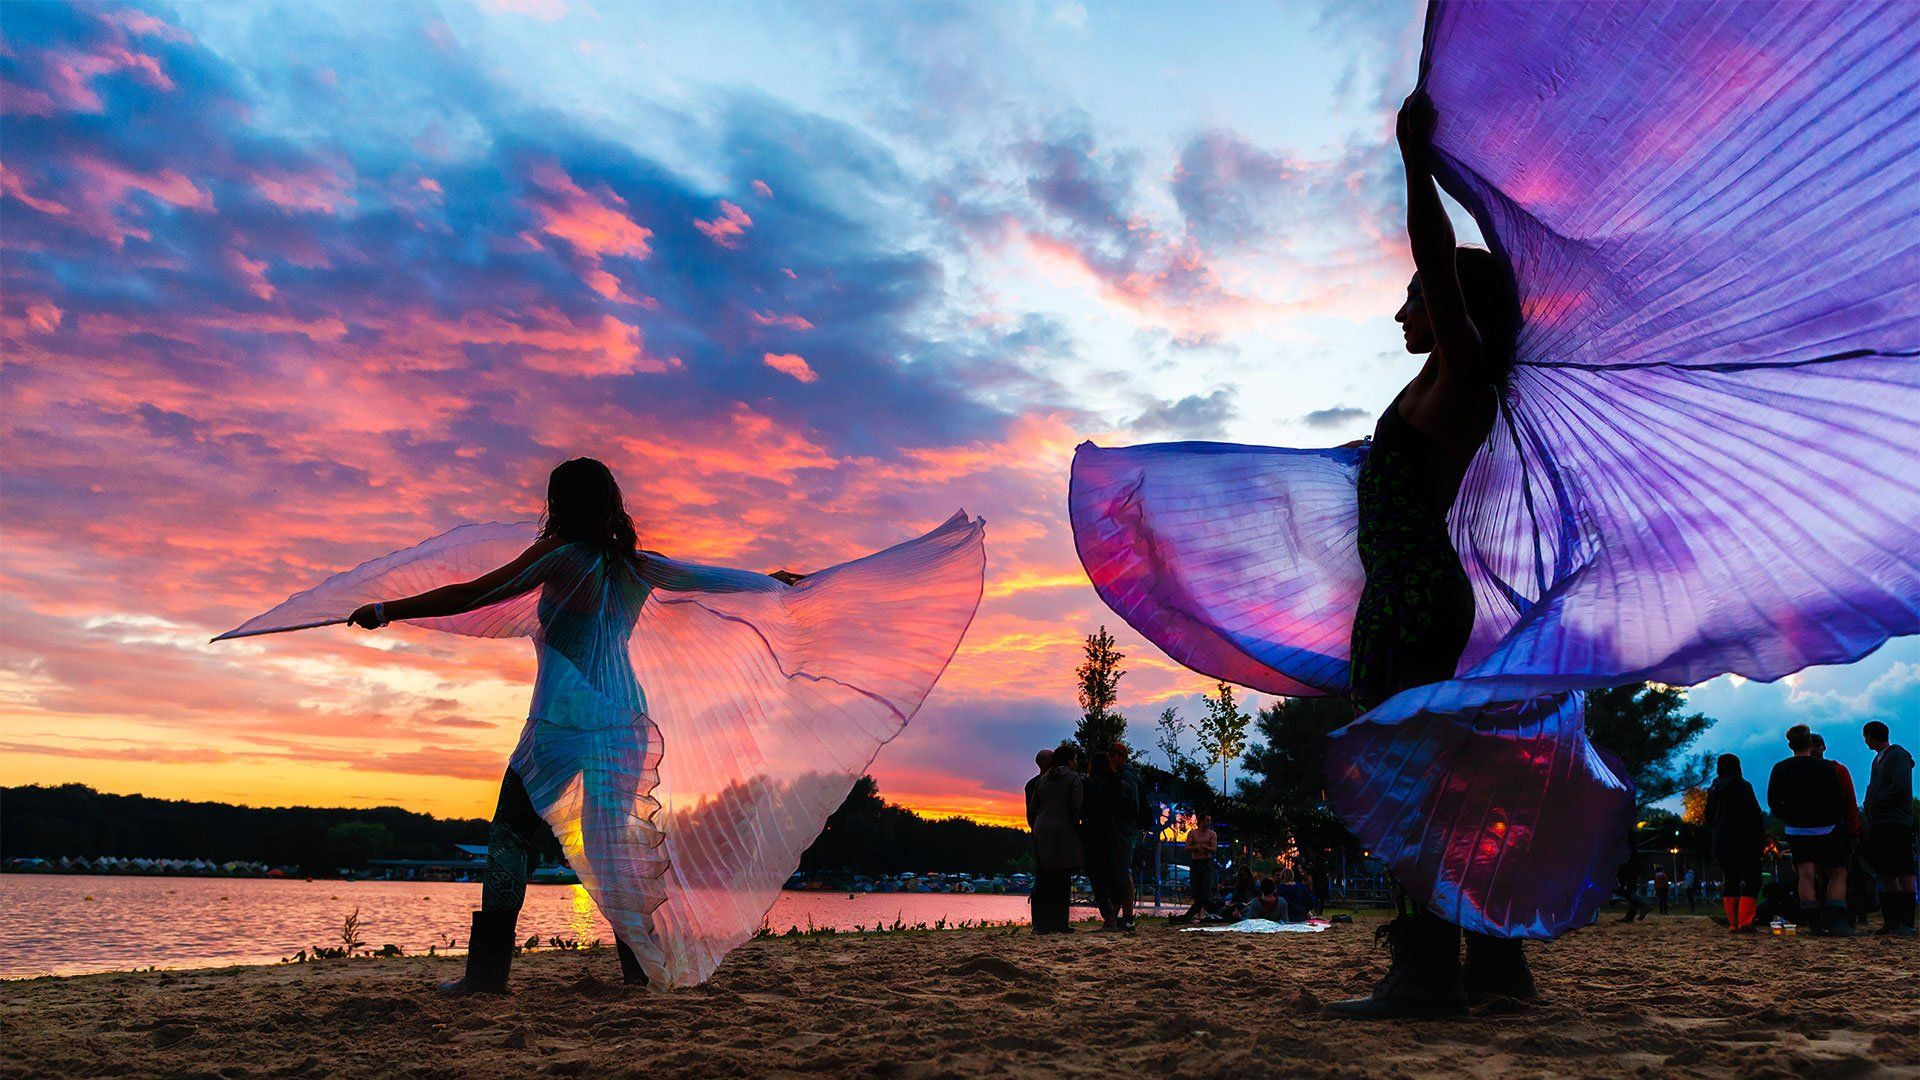 Two women twirl colourful silks at sunset. Photo by Bart Heemskerk.